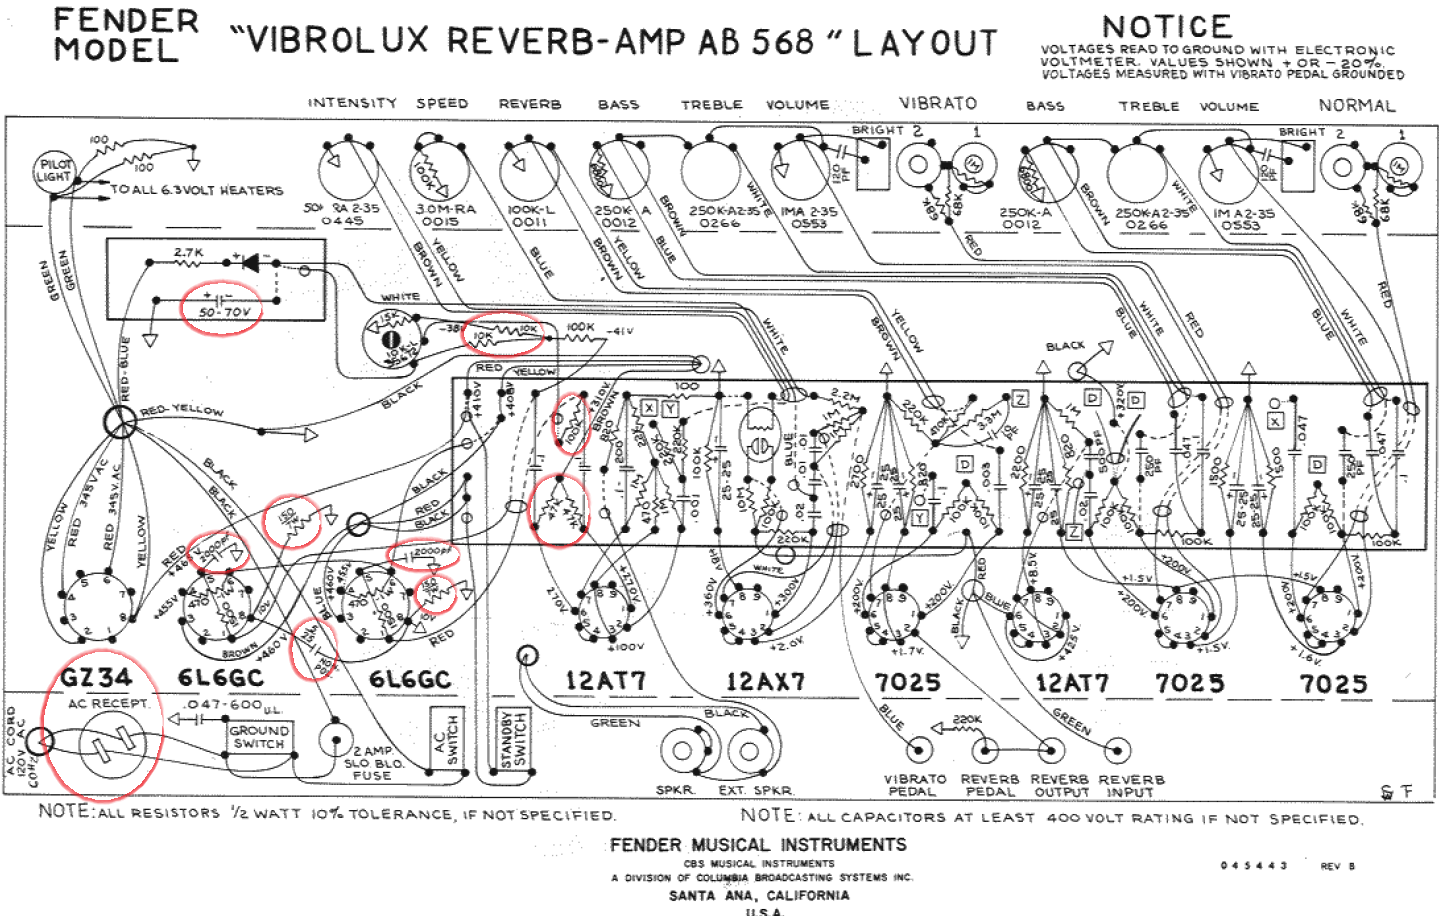 vibrolux layout AB568 aa964 vibrolux wiring diagram trailer wiring diagram \u2022 wiring diagrams Fender Deluxe Reverb at bakdesigns.co